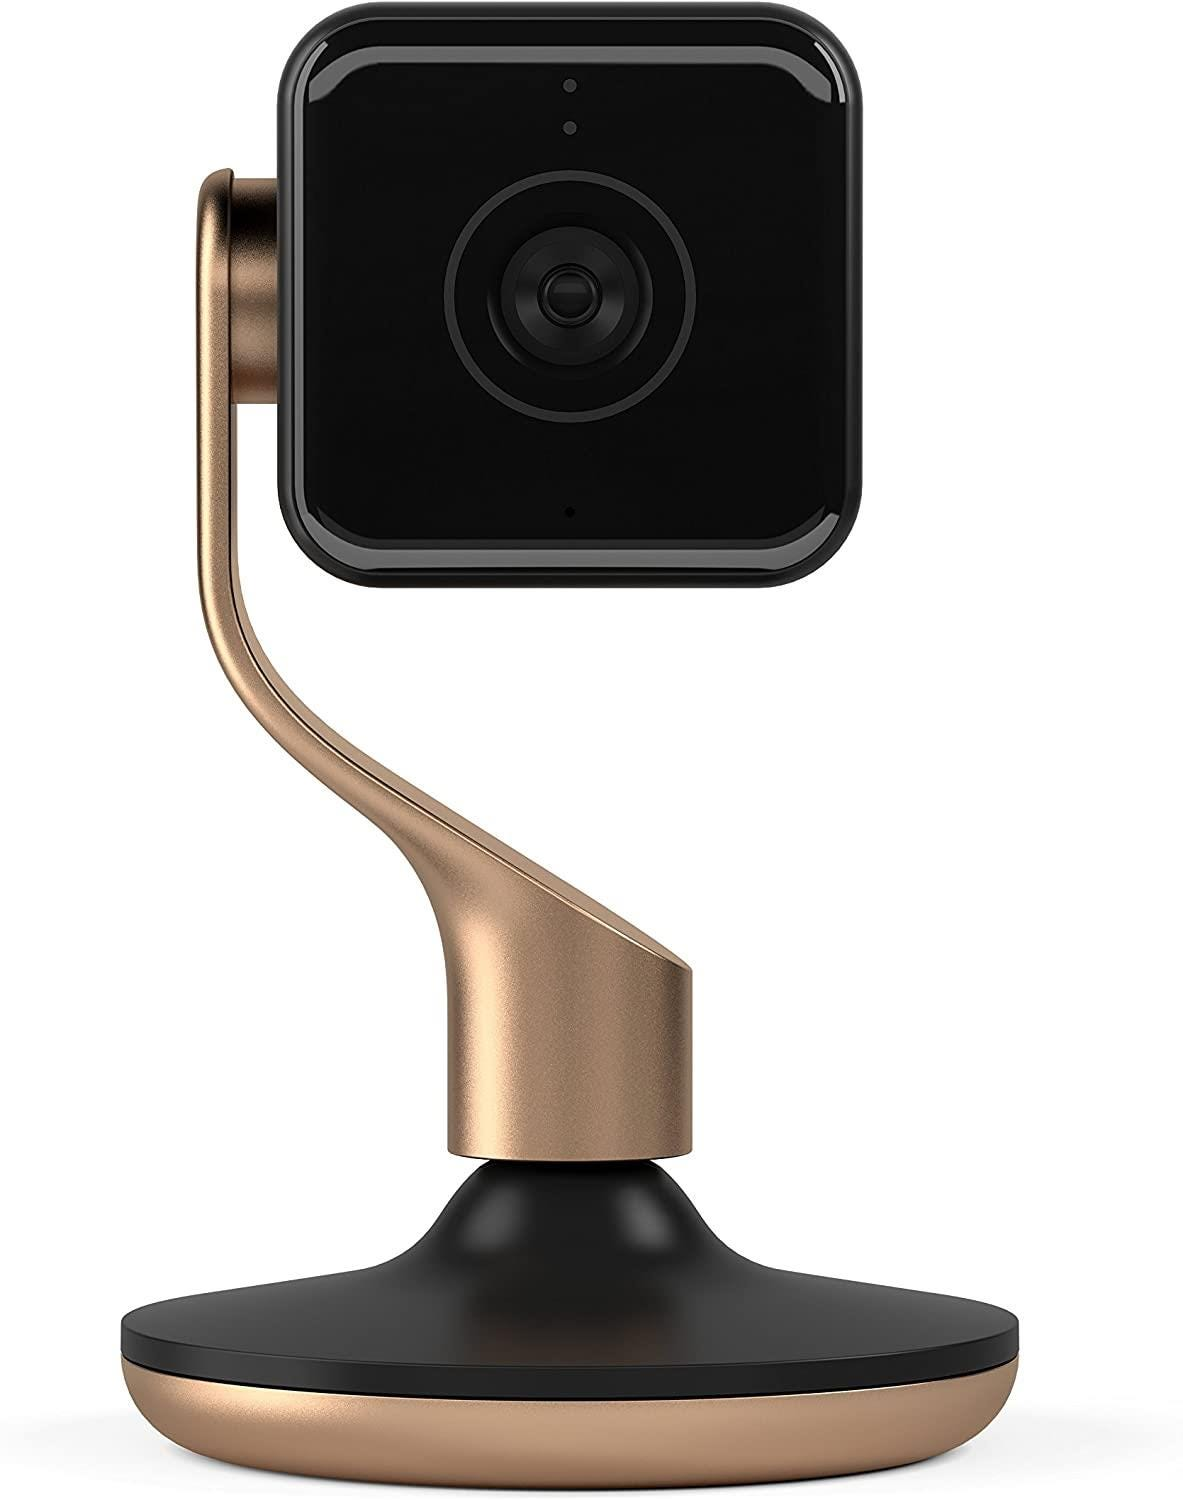 Hive View Indoor Wireless Full HD Night-Vision Security Camera - Black    Brushed Copper